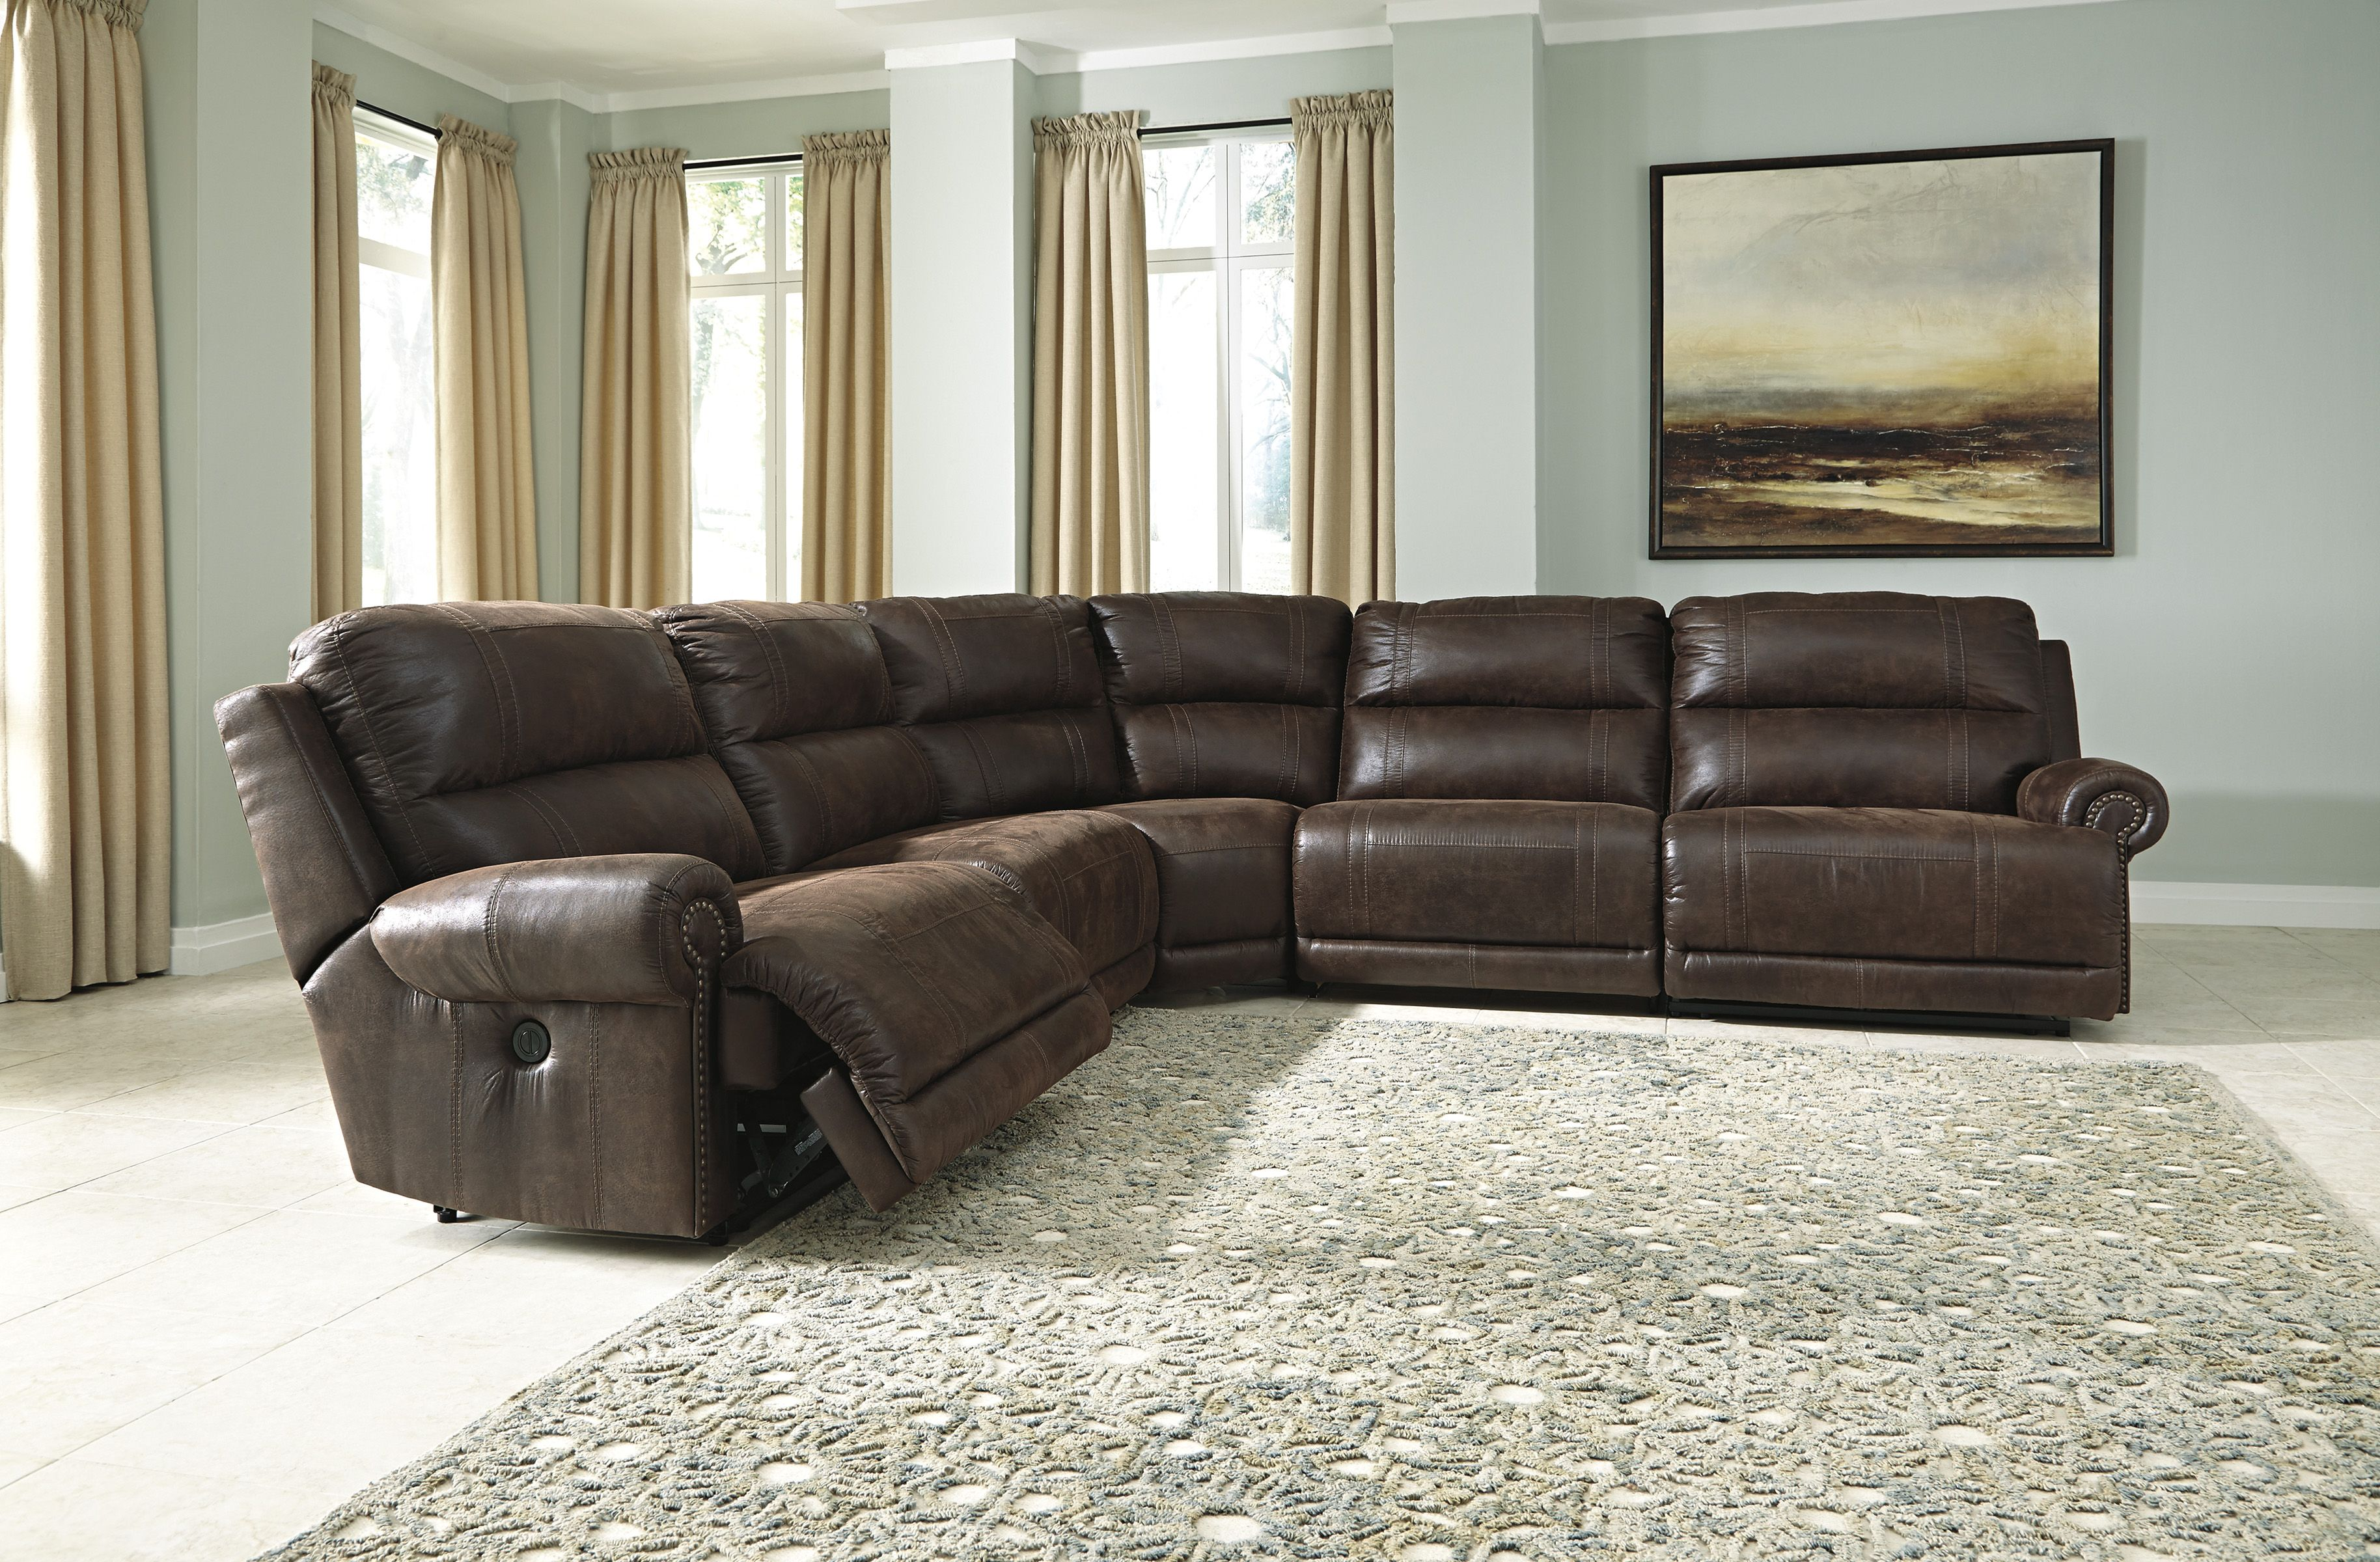 Benchcraft 931 Reclining Sectional Power Reclining Sectional Sofa Sectional Sofa Couch